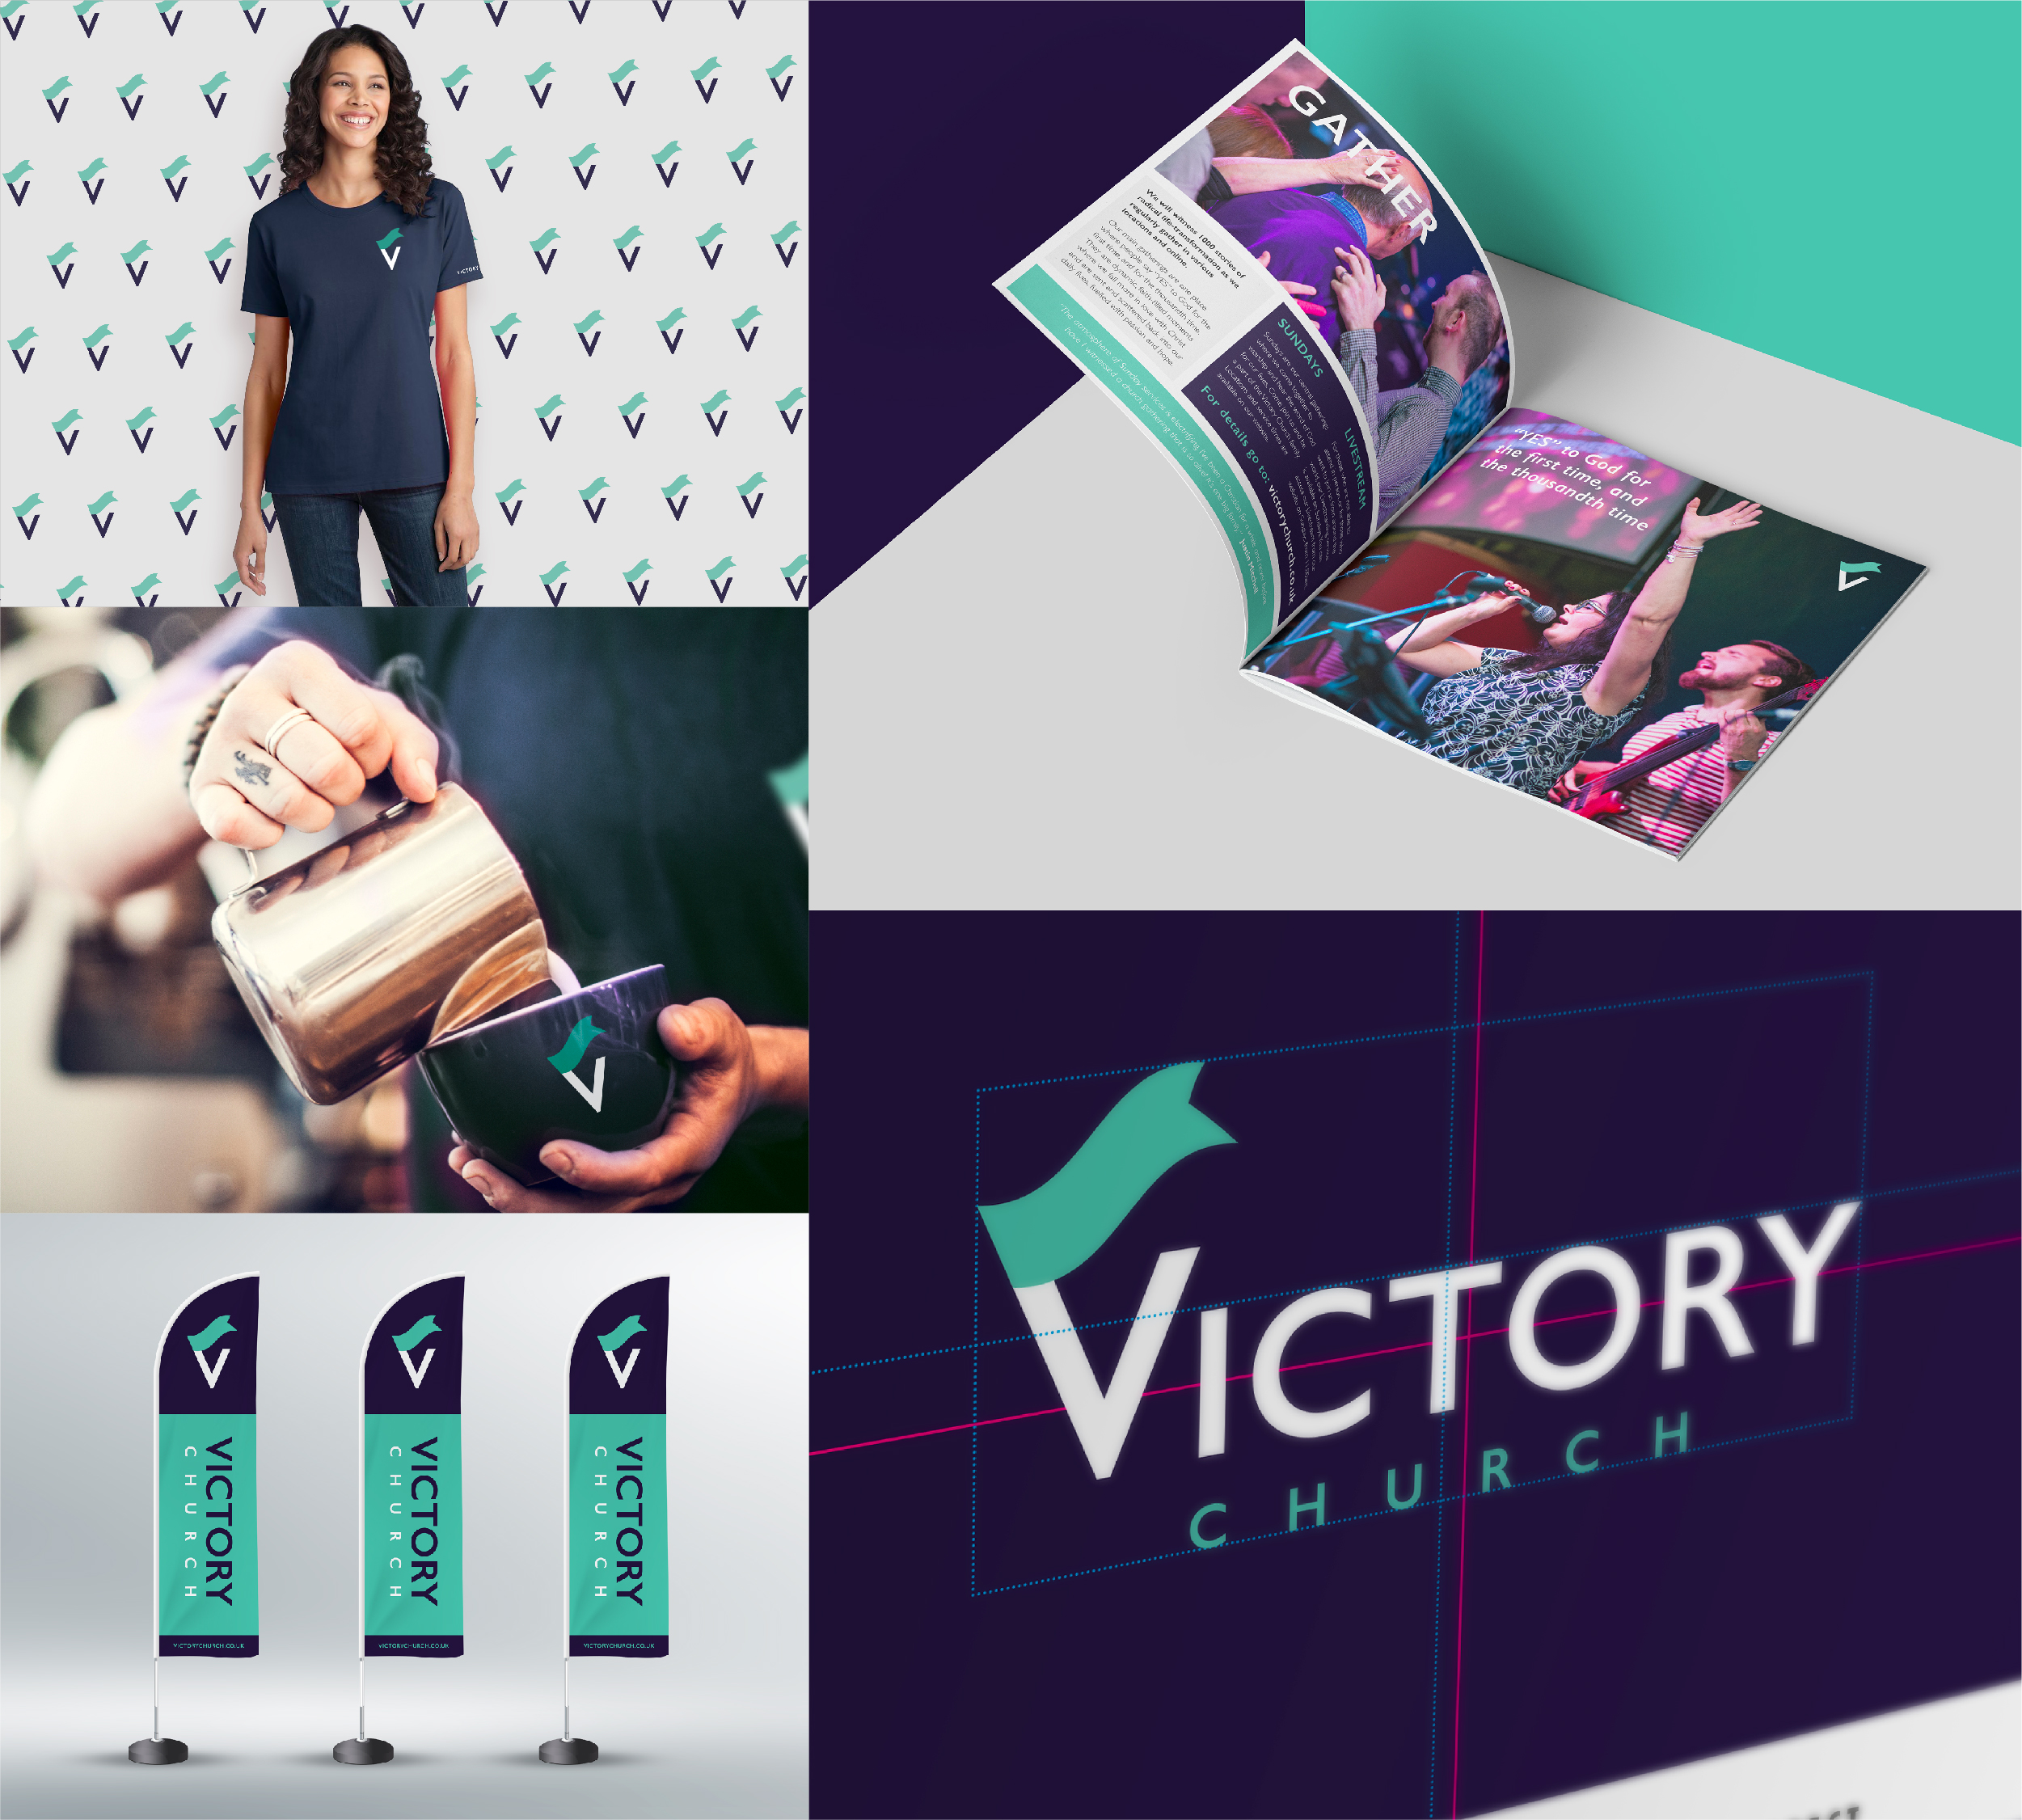 Victory Church branding applications - t-shirt / mug / brochure / flags